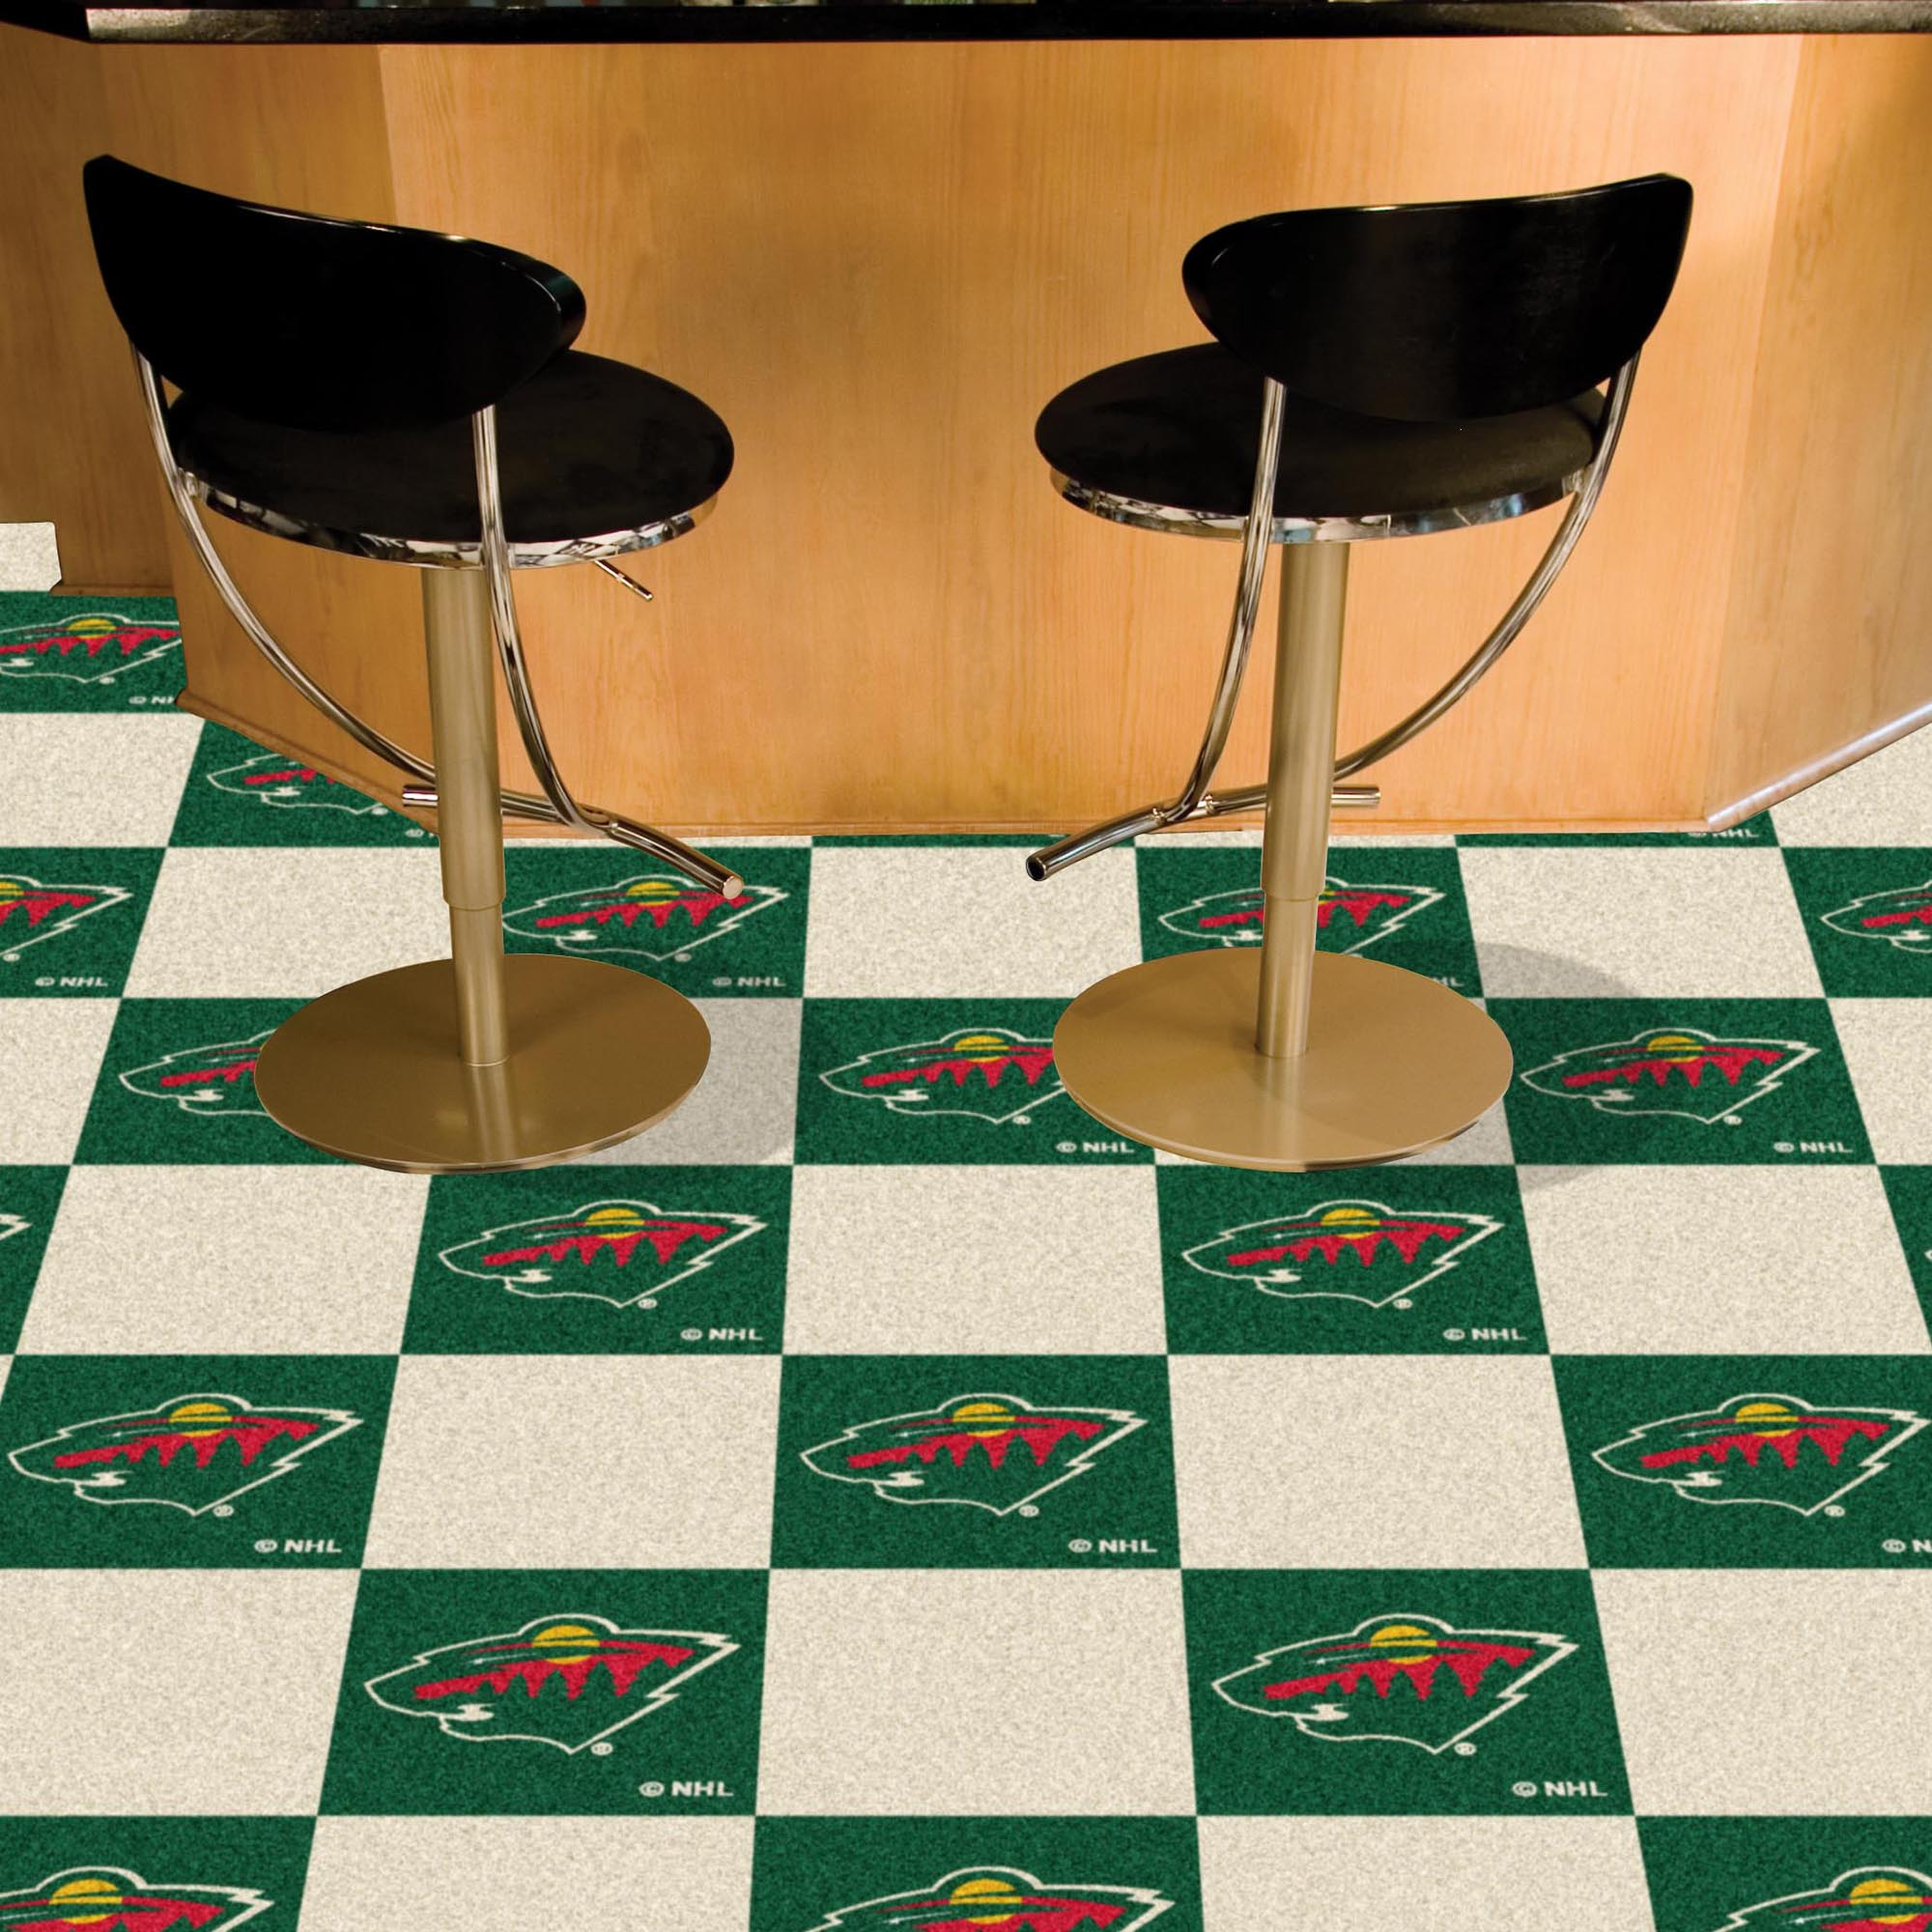 Minnesota Wild Carpet Tiles 18x18 In Buy At Khc Sports